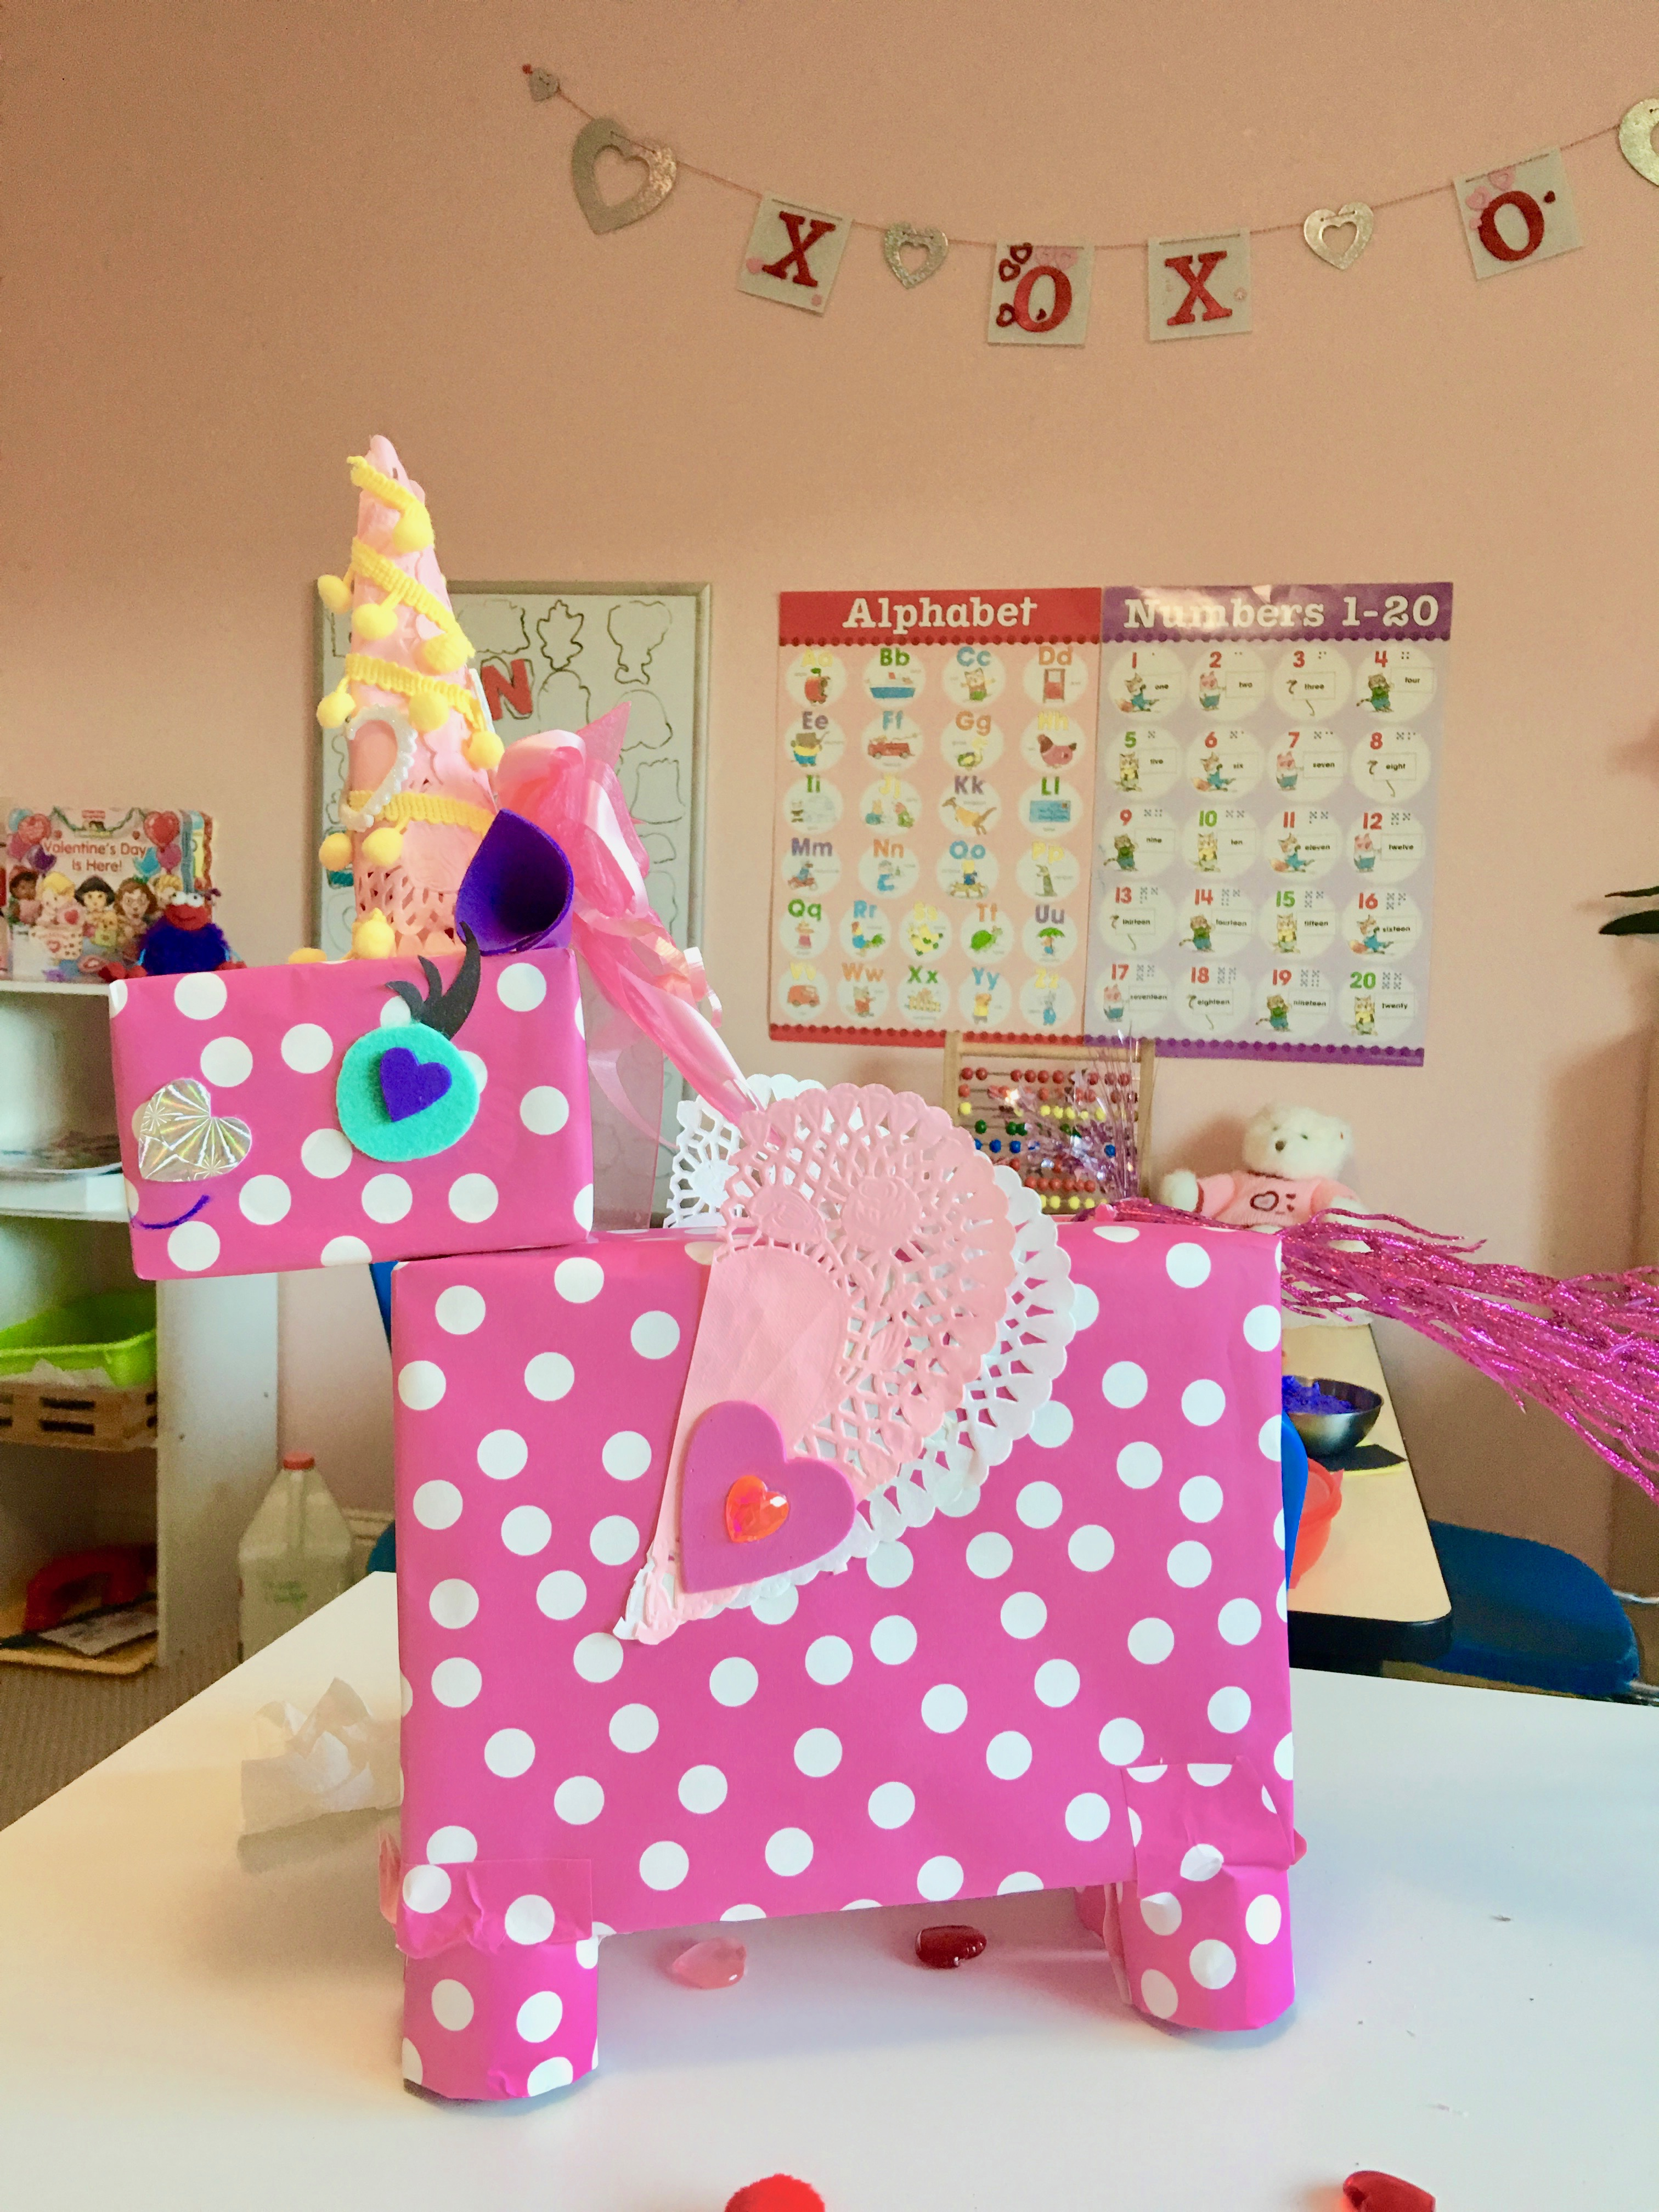 Unicorn Boxes: Recycle some small boxes from around your home, cover with wrapping or construction paper, add some fun stickers, ribbon or yarn and you've got yourself some bright and colorful DIY Valentine boxes